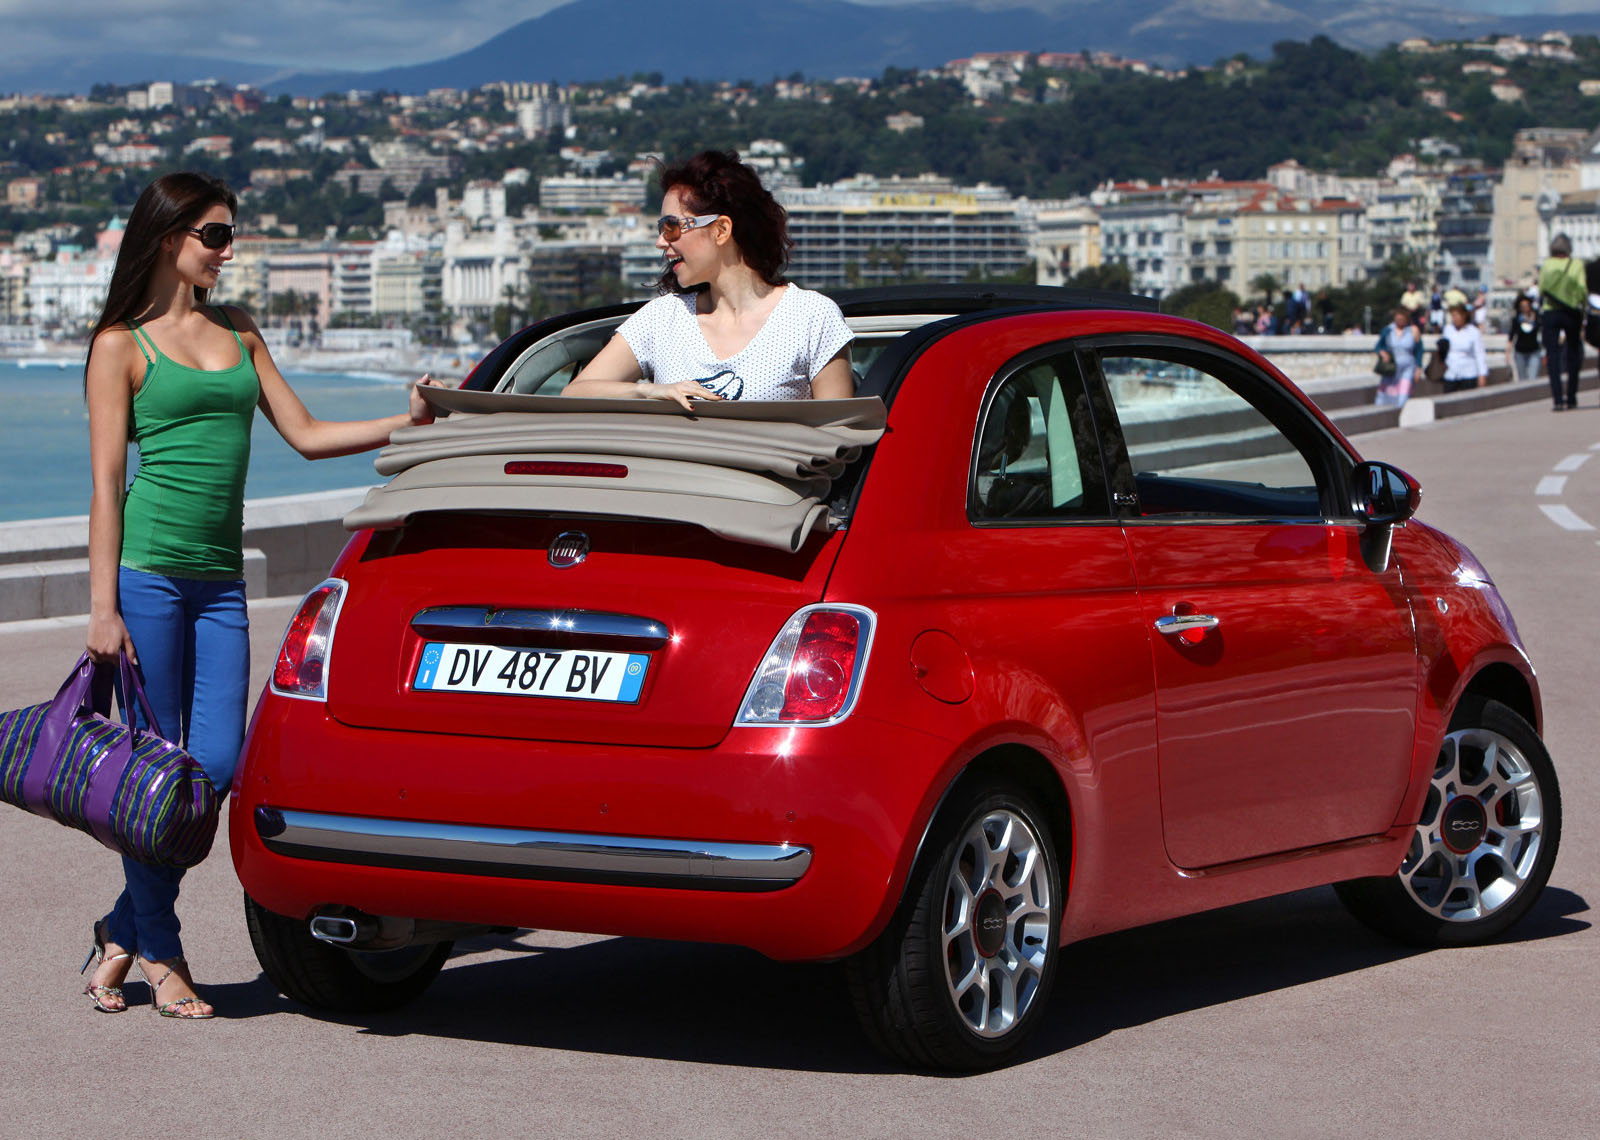 fiat 500 cc group l cabriolet rental center crete. Black Bedroom Furniture Sets. Home Design Ideas